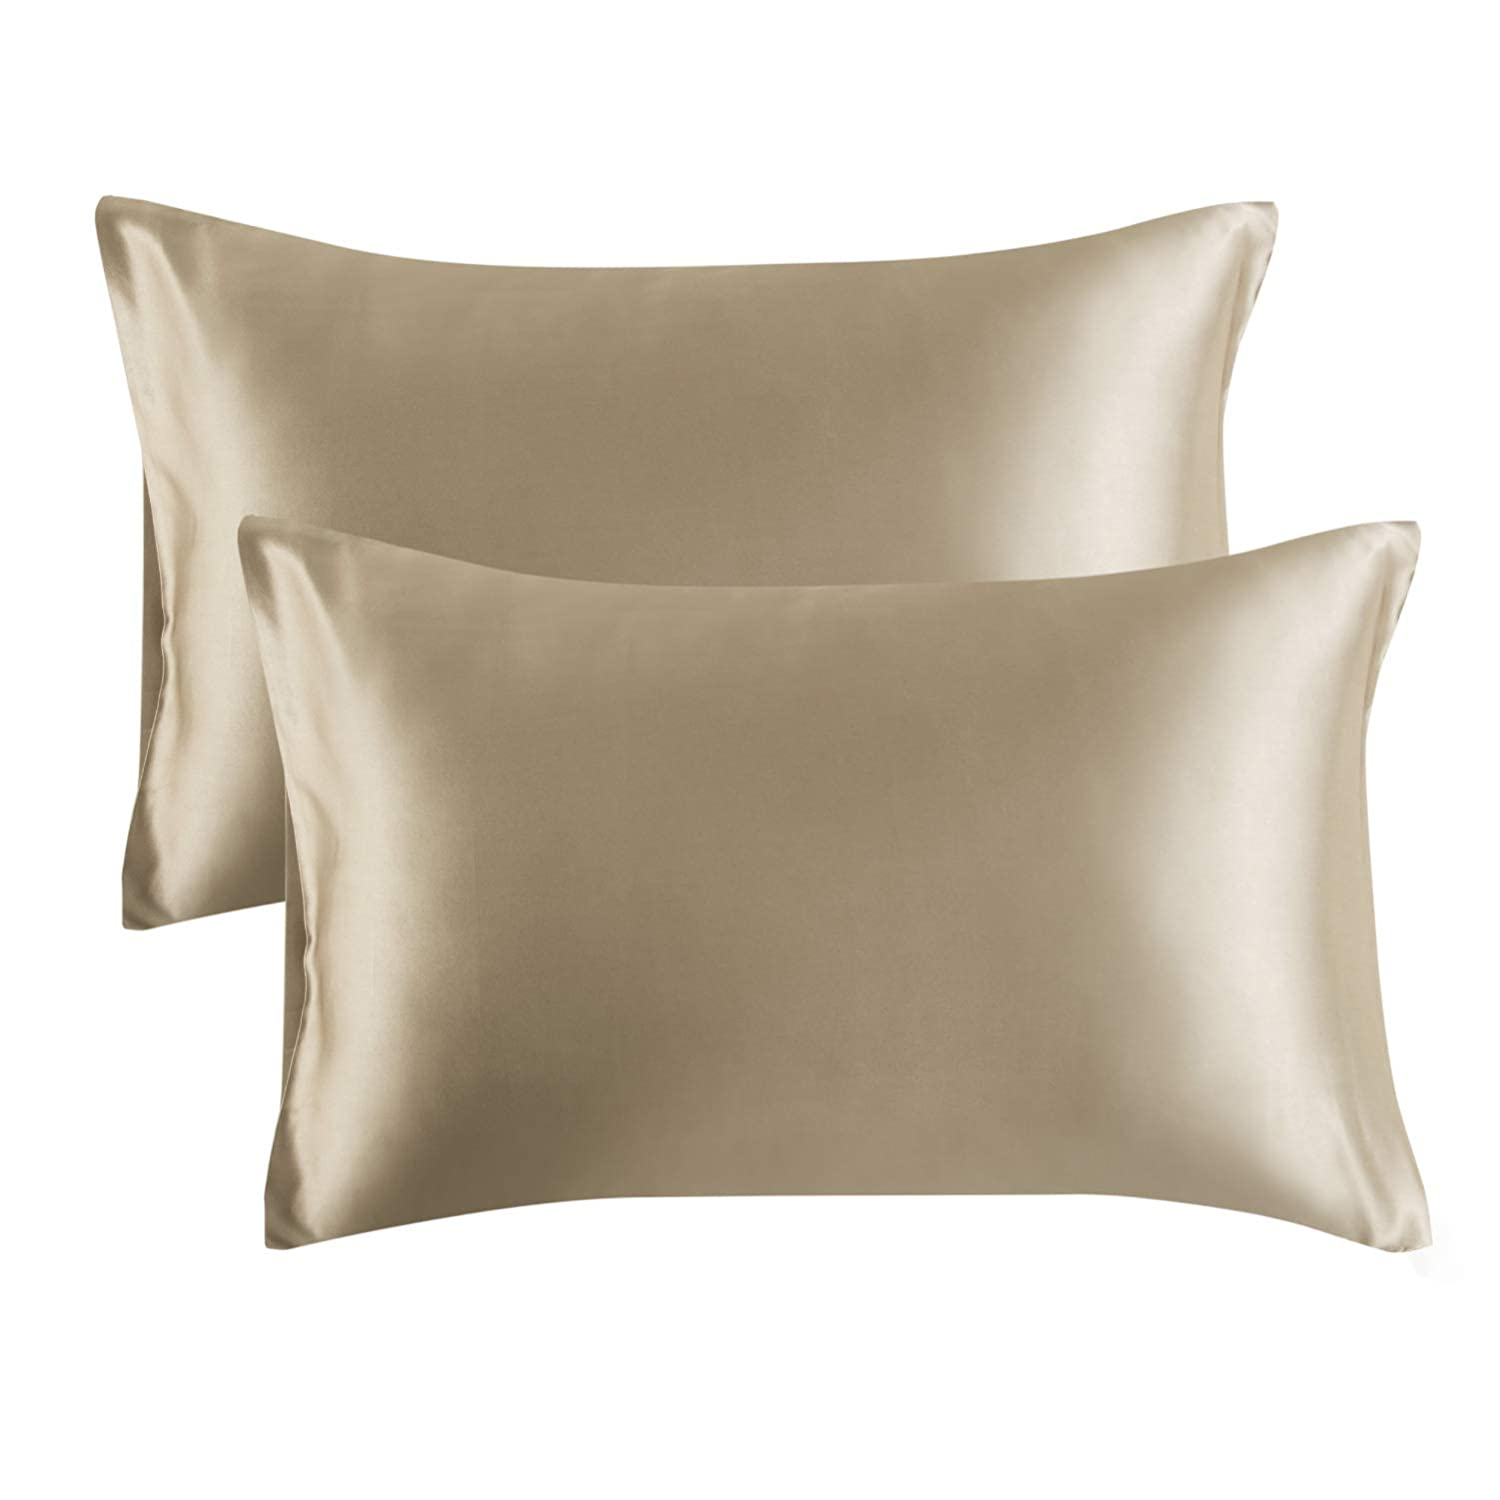 Bedsure Satin Pillowcase for Hair and Skin, 2-Pack - Queen Size (20x30 inches) Pillow Cases - Satin Pillow Covers with Envelope Closure, Taupe